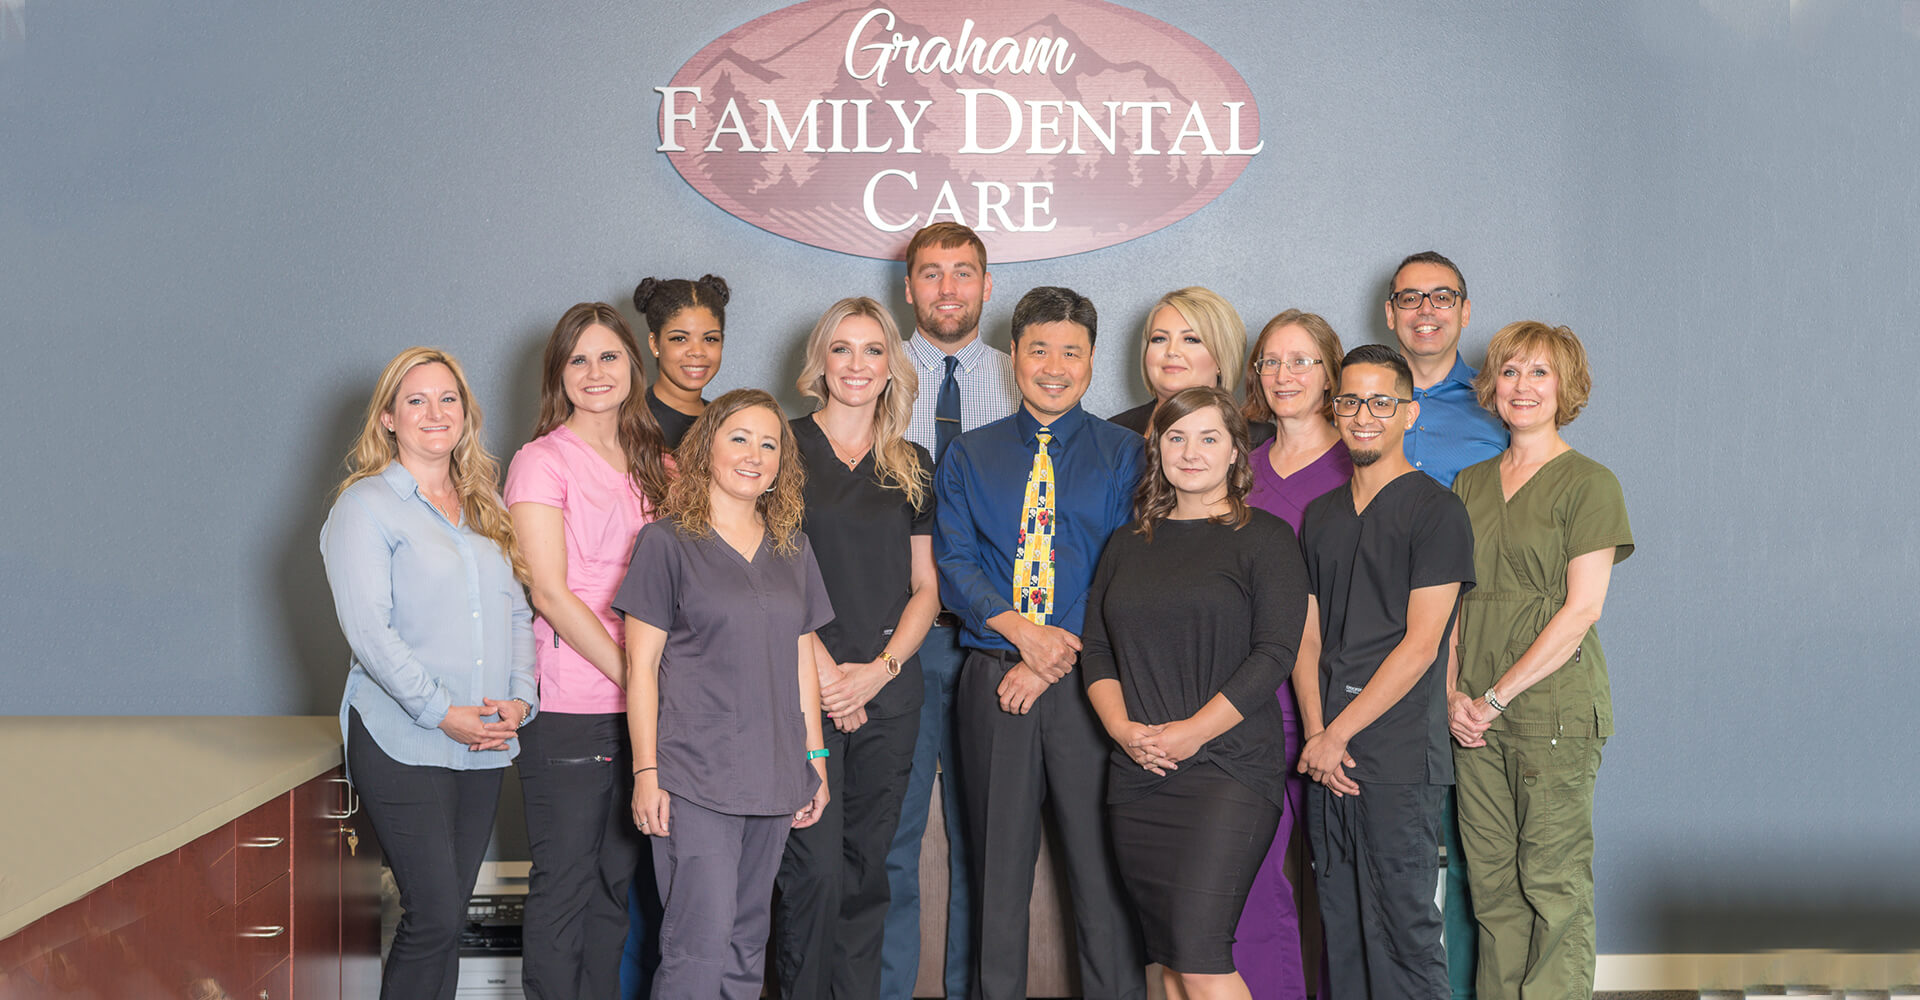 The entire Graham Family Dental Care team standing together under our logo in the office